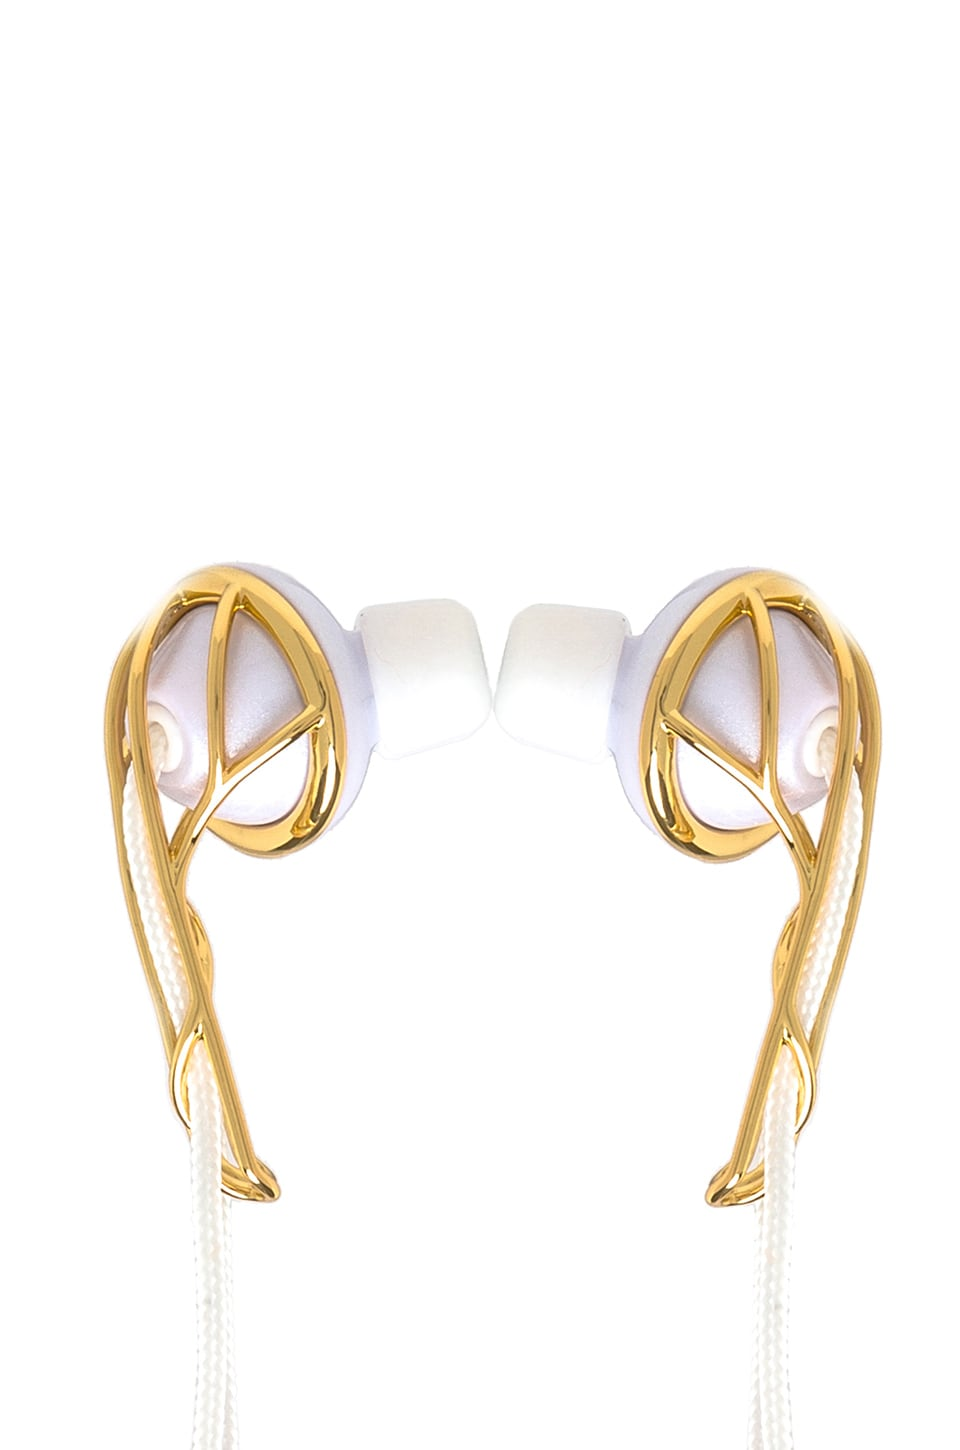 FRENDS Ella B Earbuds in Gold & White